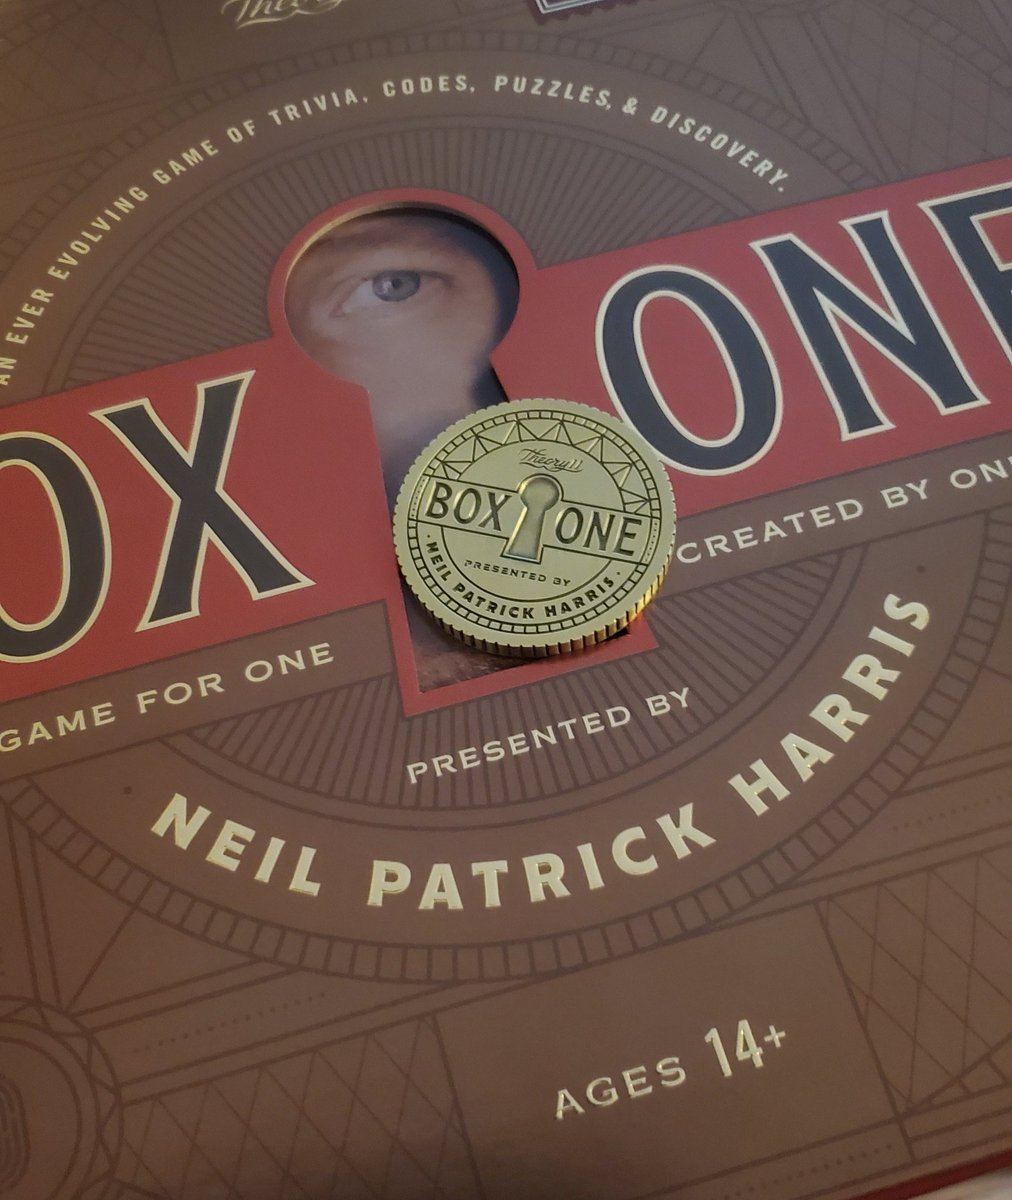 This was WAY more fun than I expected! So many surprises.  #boxone @ActuallyNPH @theory11  Hoping for a #boxtwo.